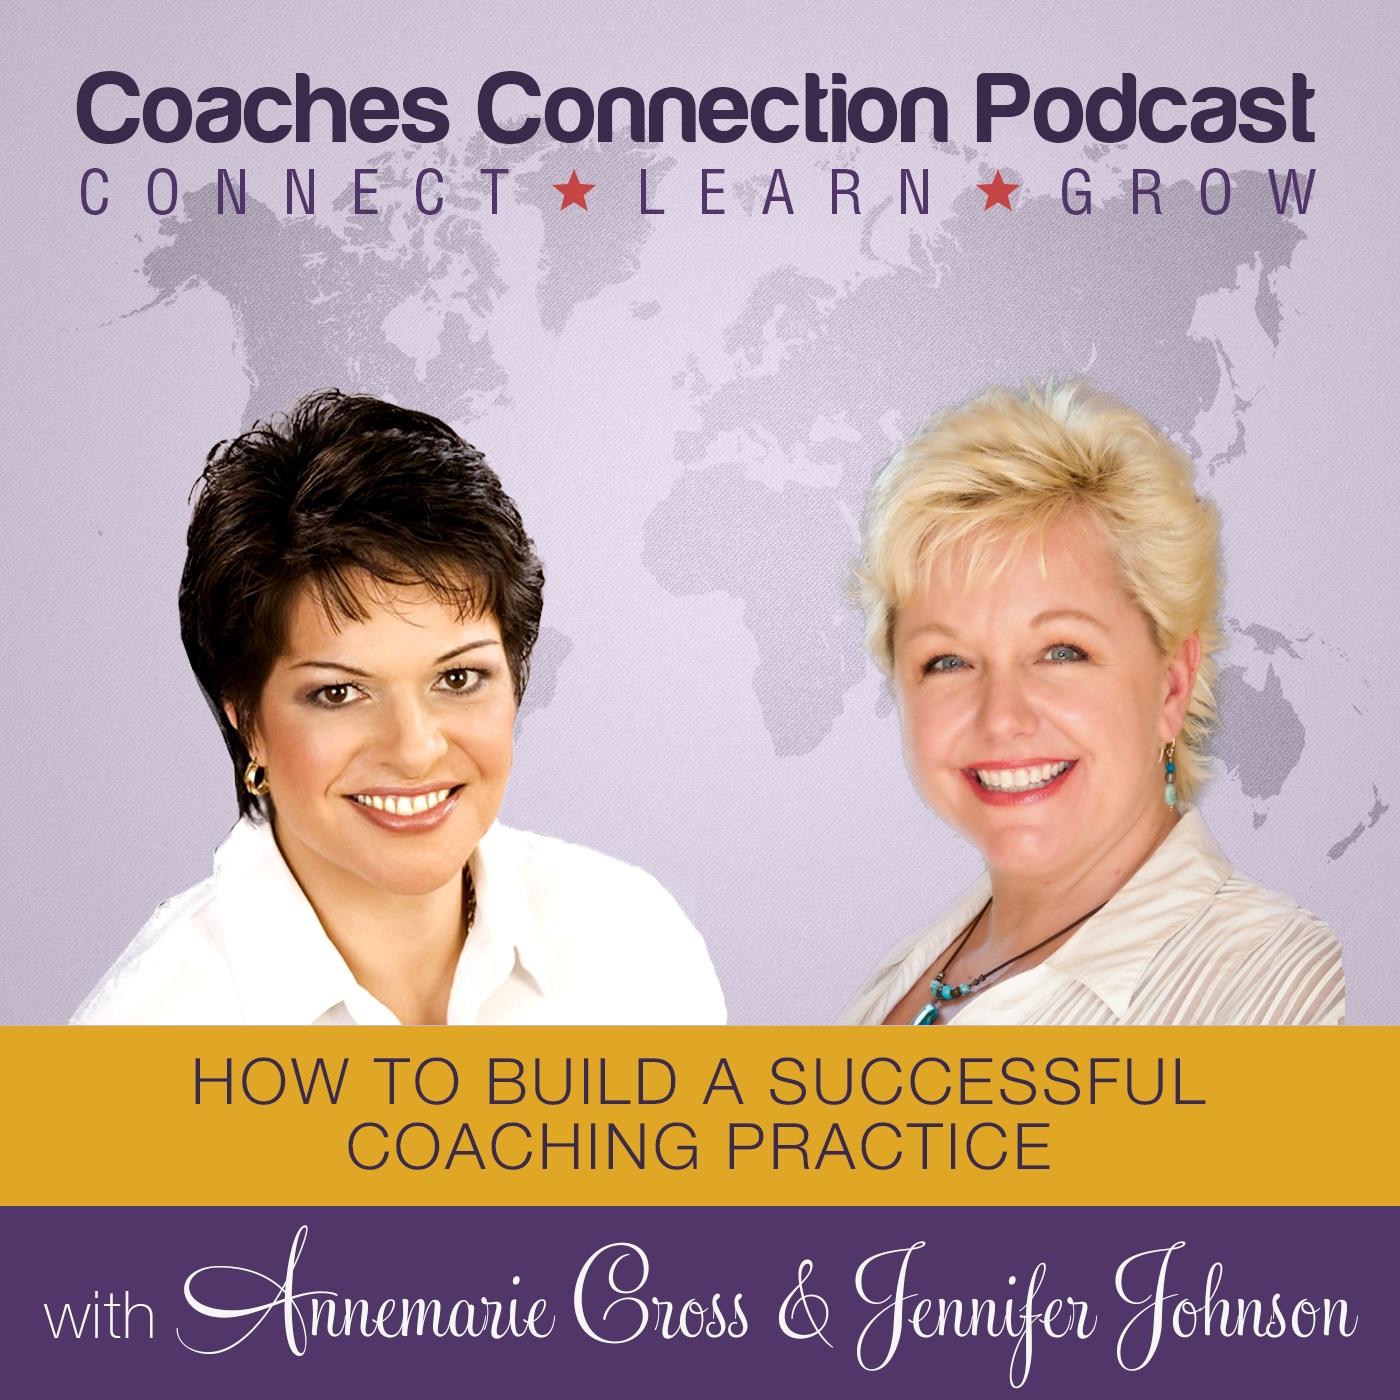 Coaches Connection Podcast - Annemarie Cross & Jennifer Johnson